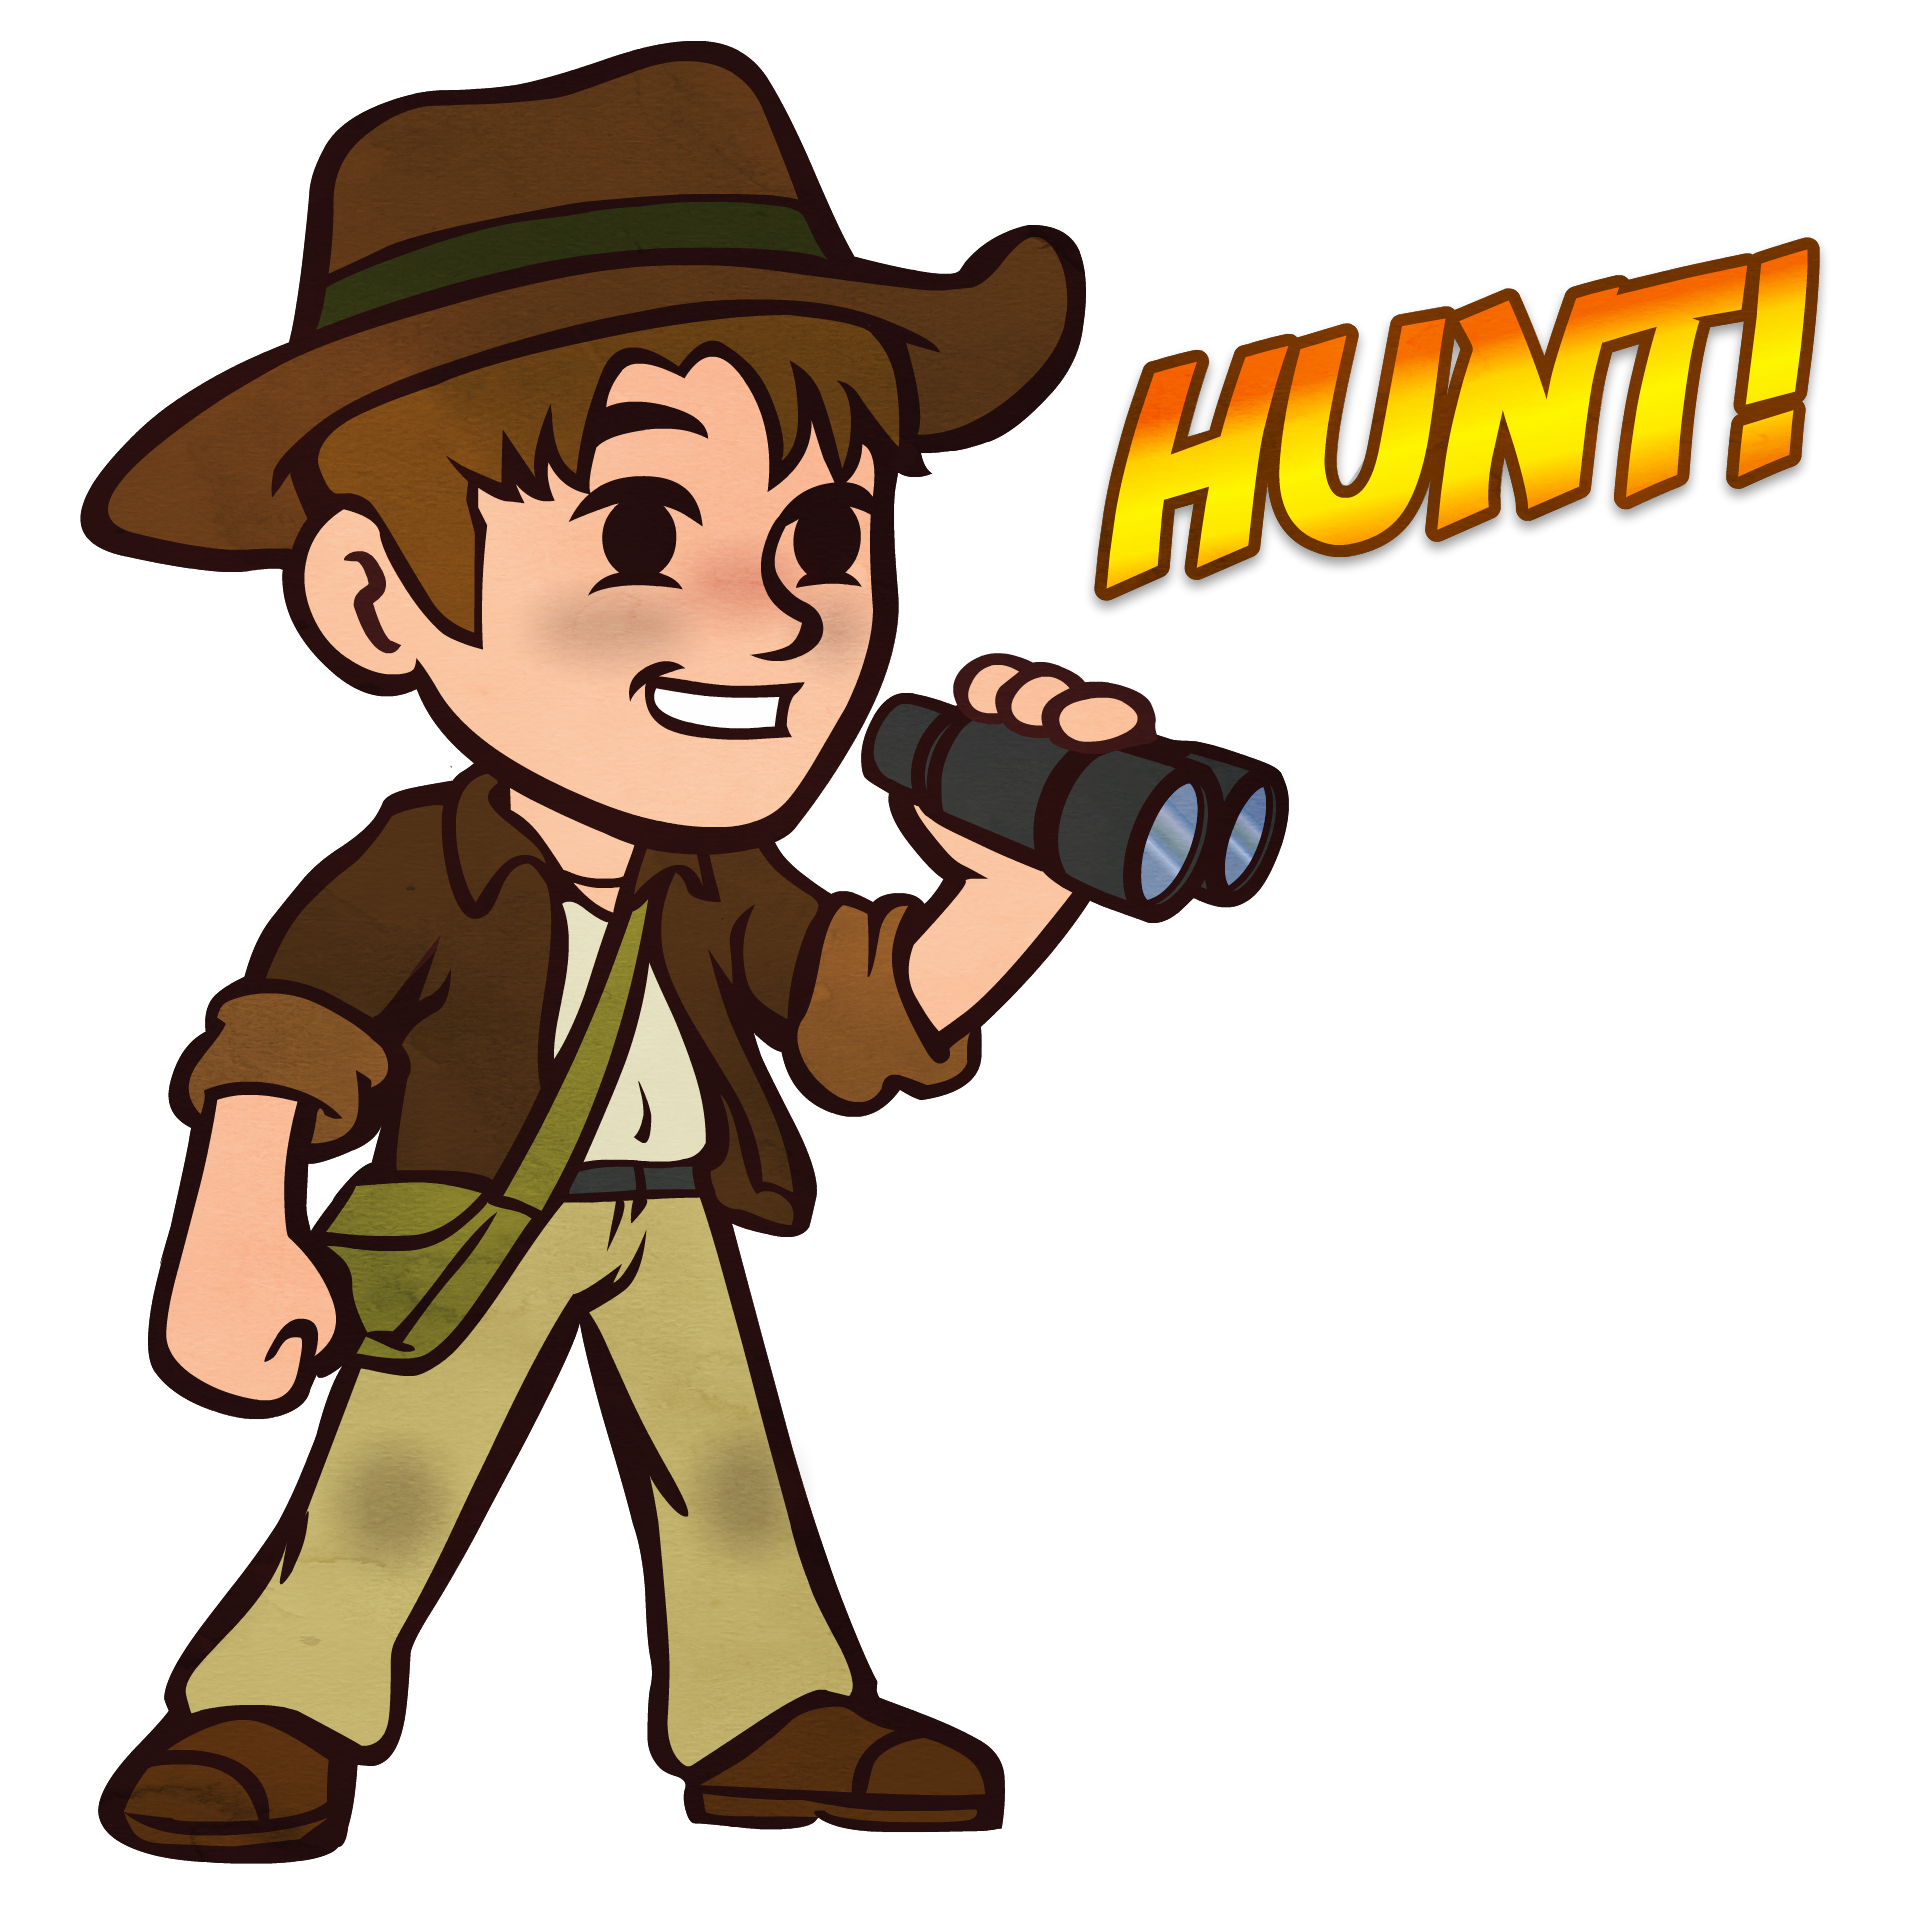 GDT Mascot - Humting a Geo Detecting Treasure Cache! Metal Detecting, Geocaching, GeoDetecting.com